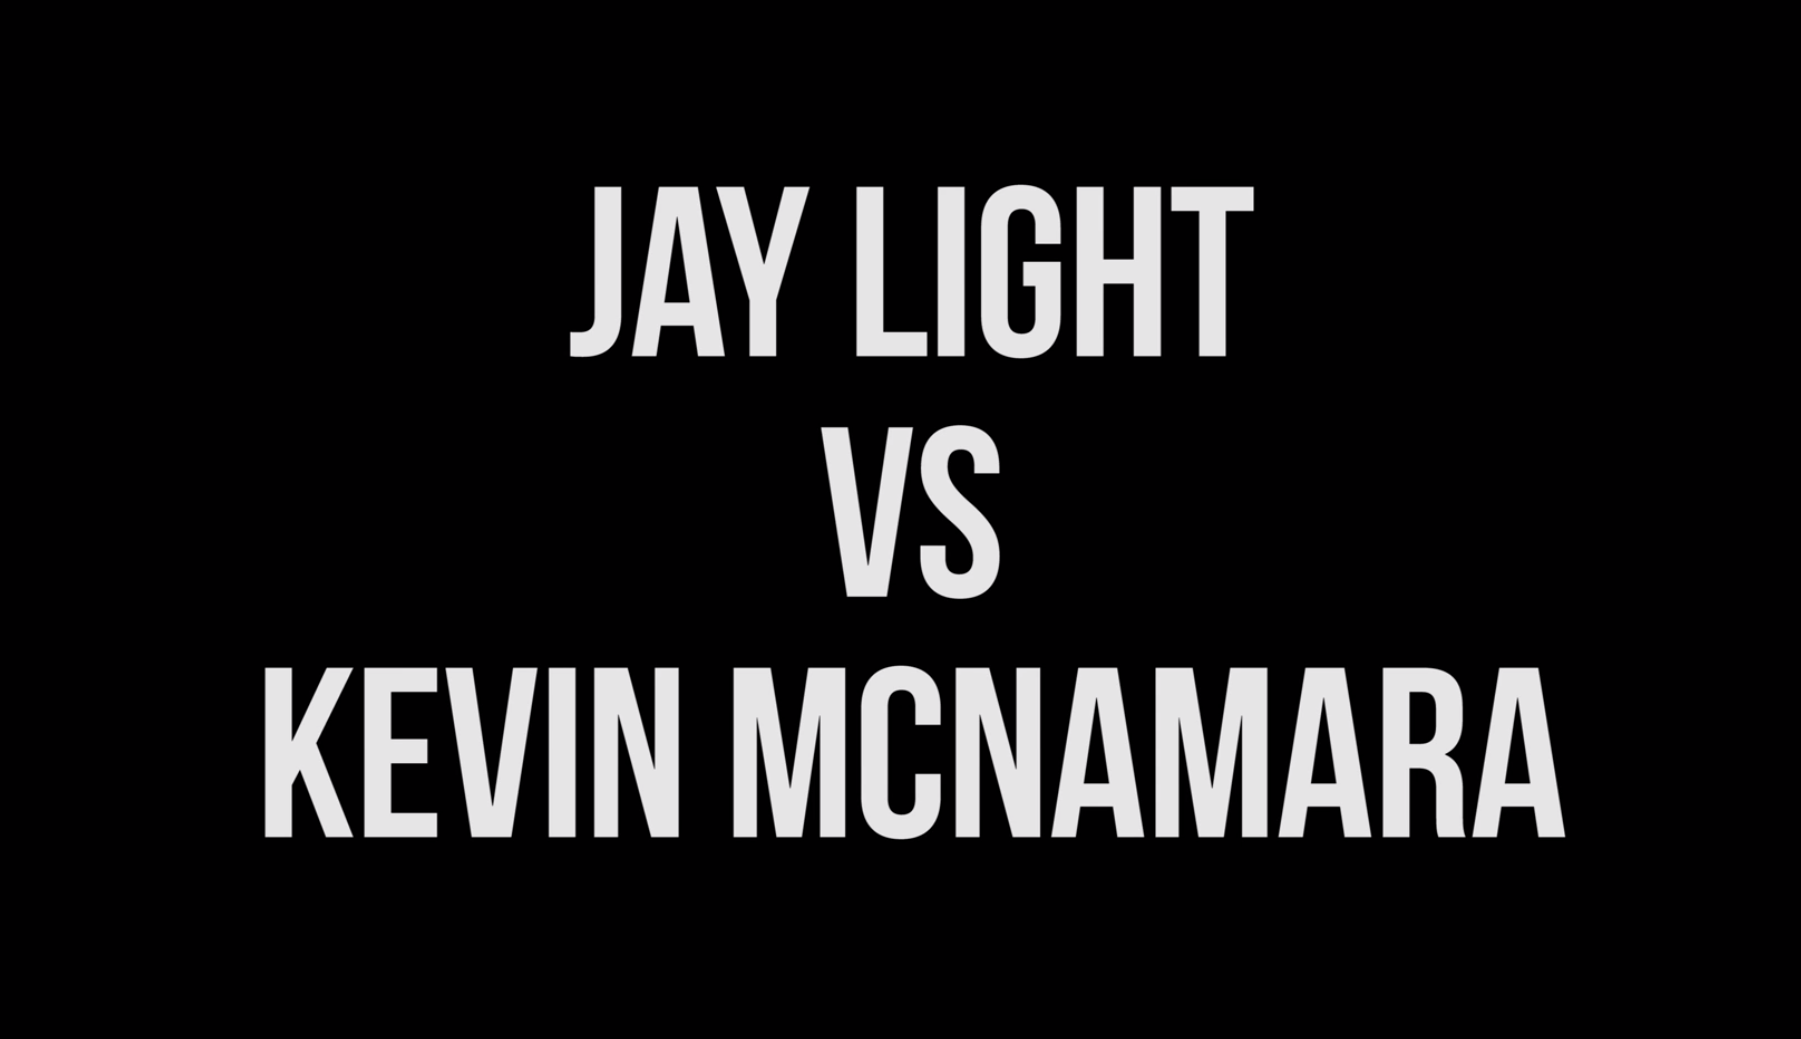 Jay Light v Kevin McNamara